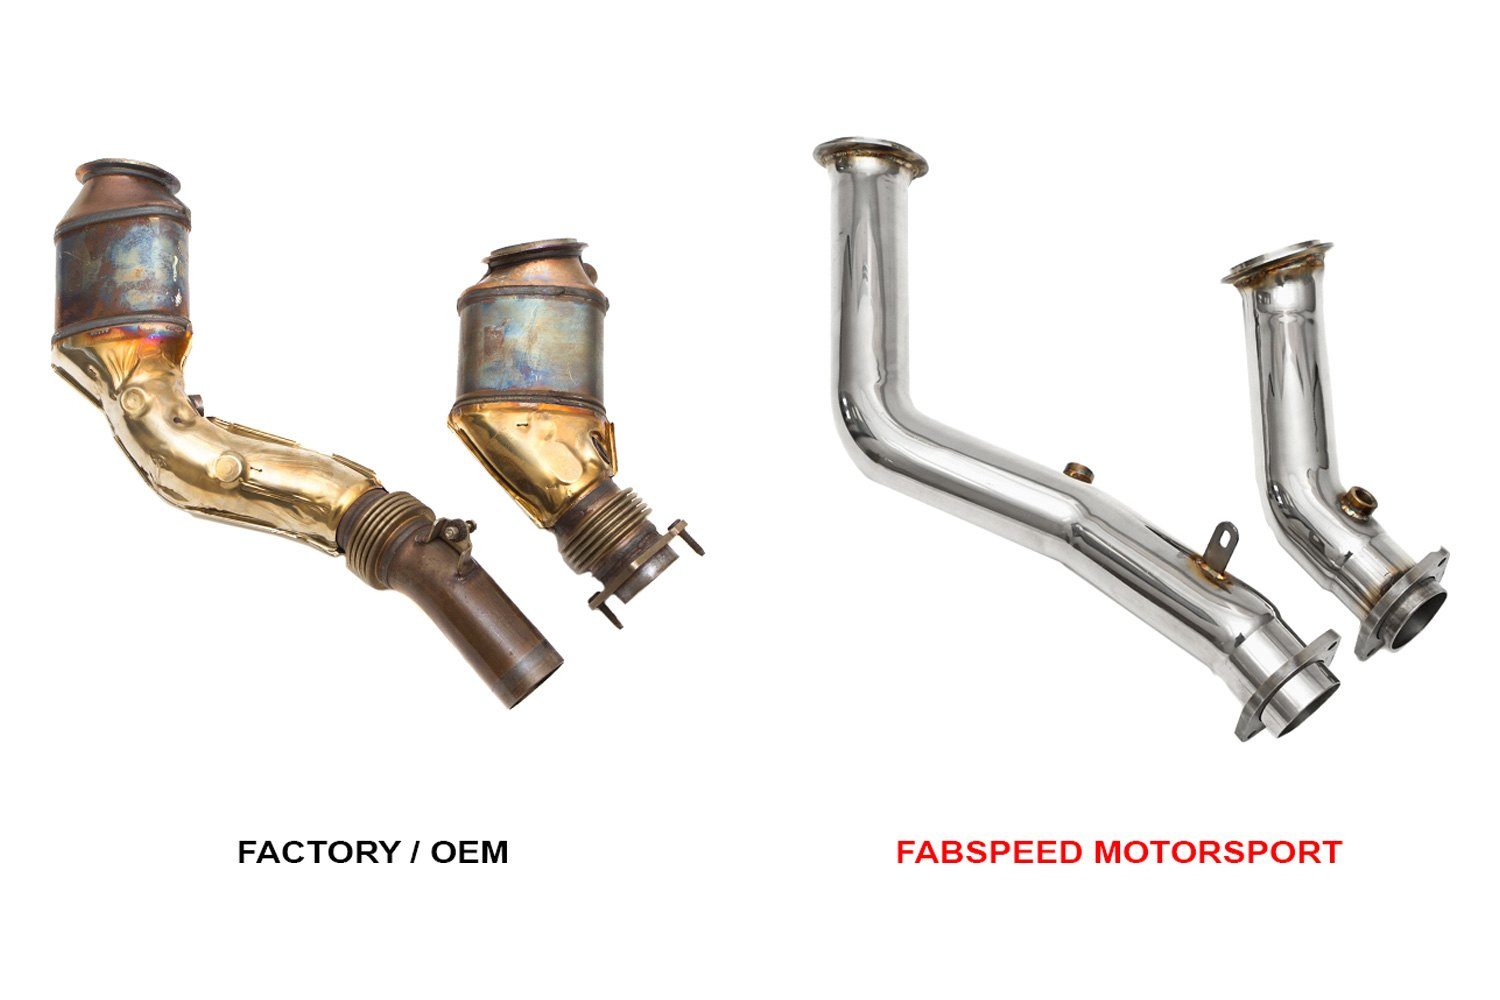 fabspeed fs bmw f8x pcbdp primary catless downpipes. Black Bedroom Furniture Sets. Home Design Ideas